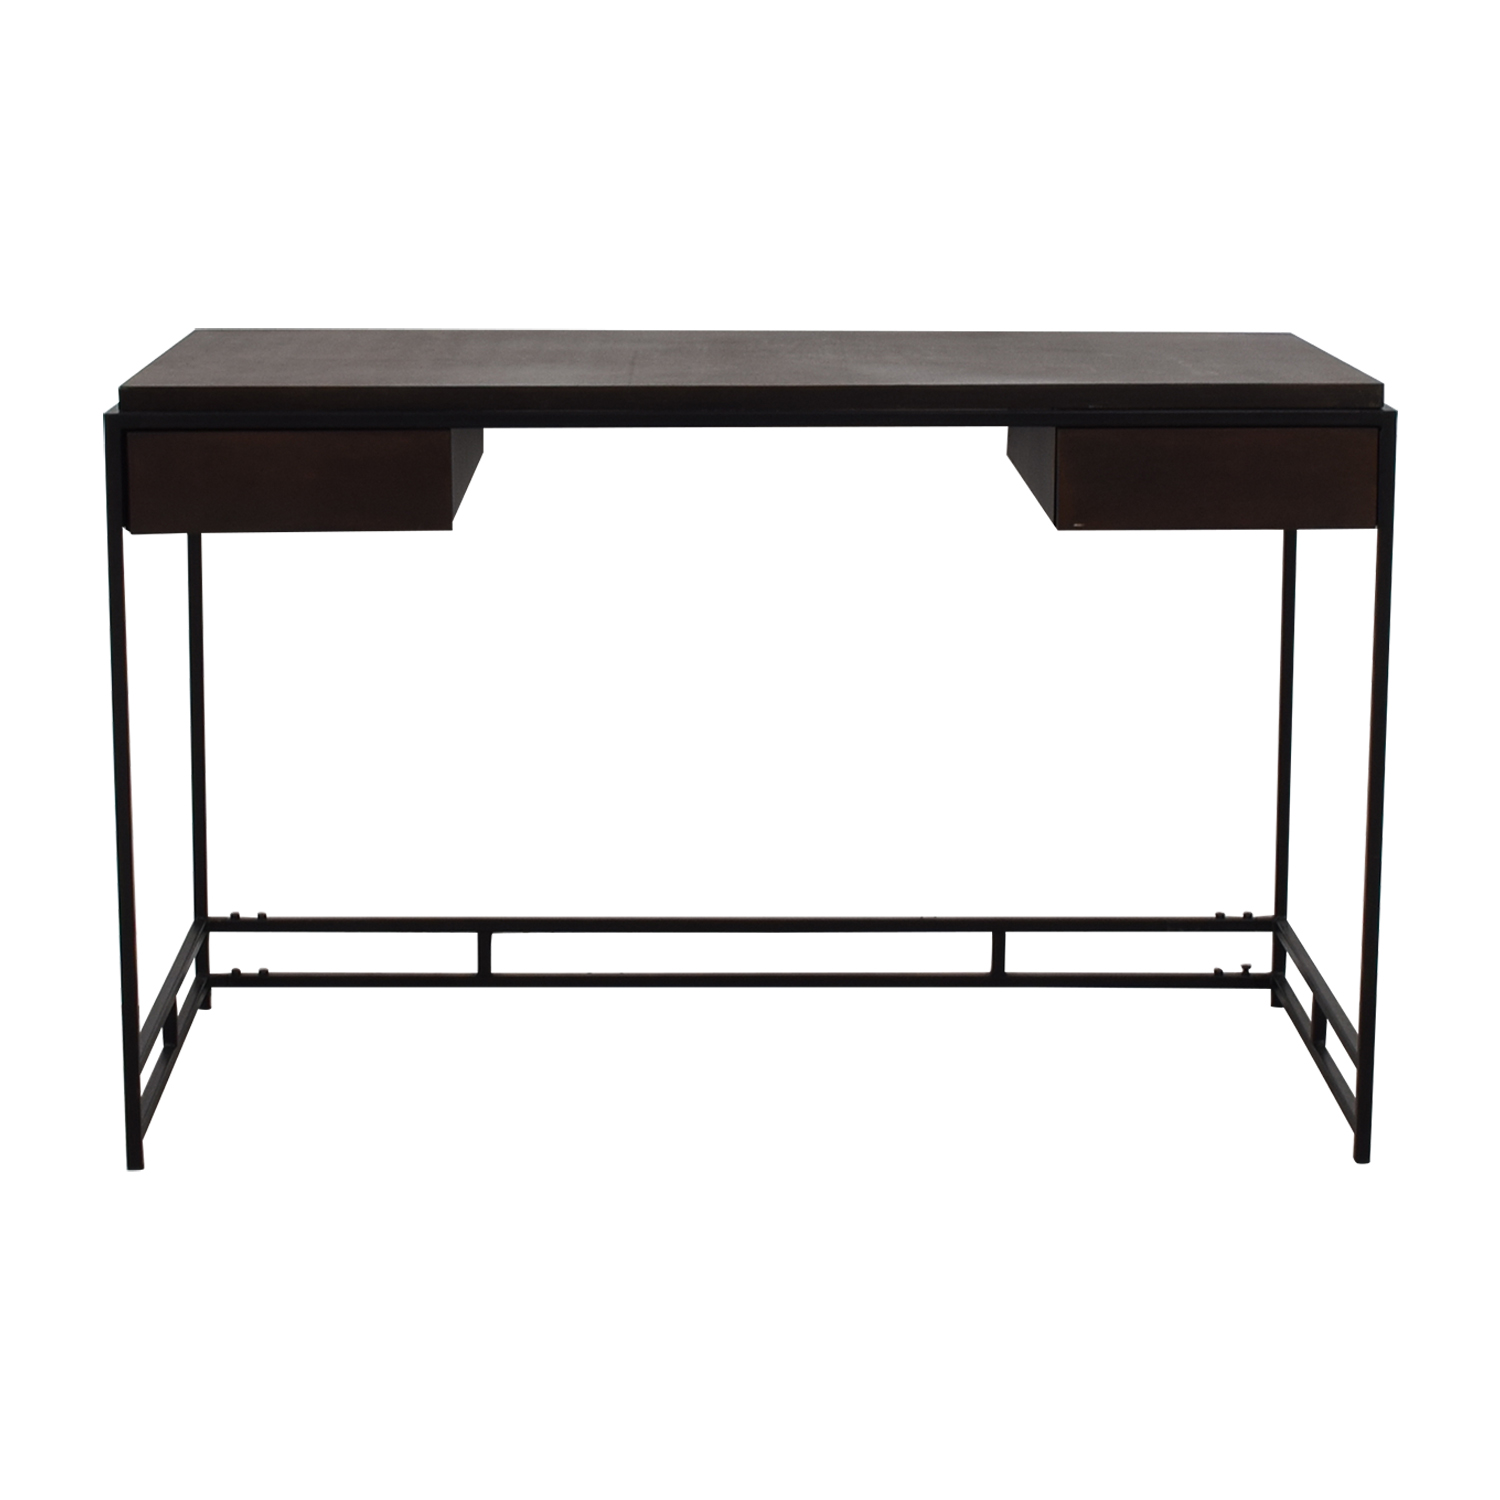 Zuo Modern Furniture Zuo Modern Furniture Espresso & Metal Two-Drawer Studio Desk second hand